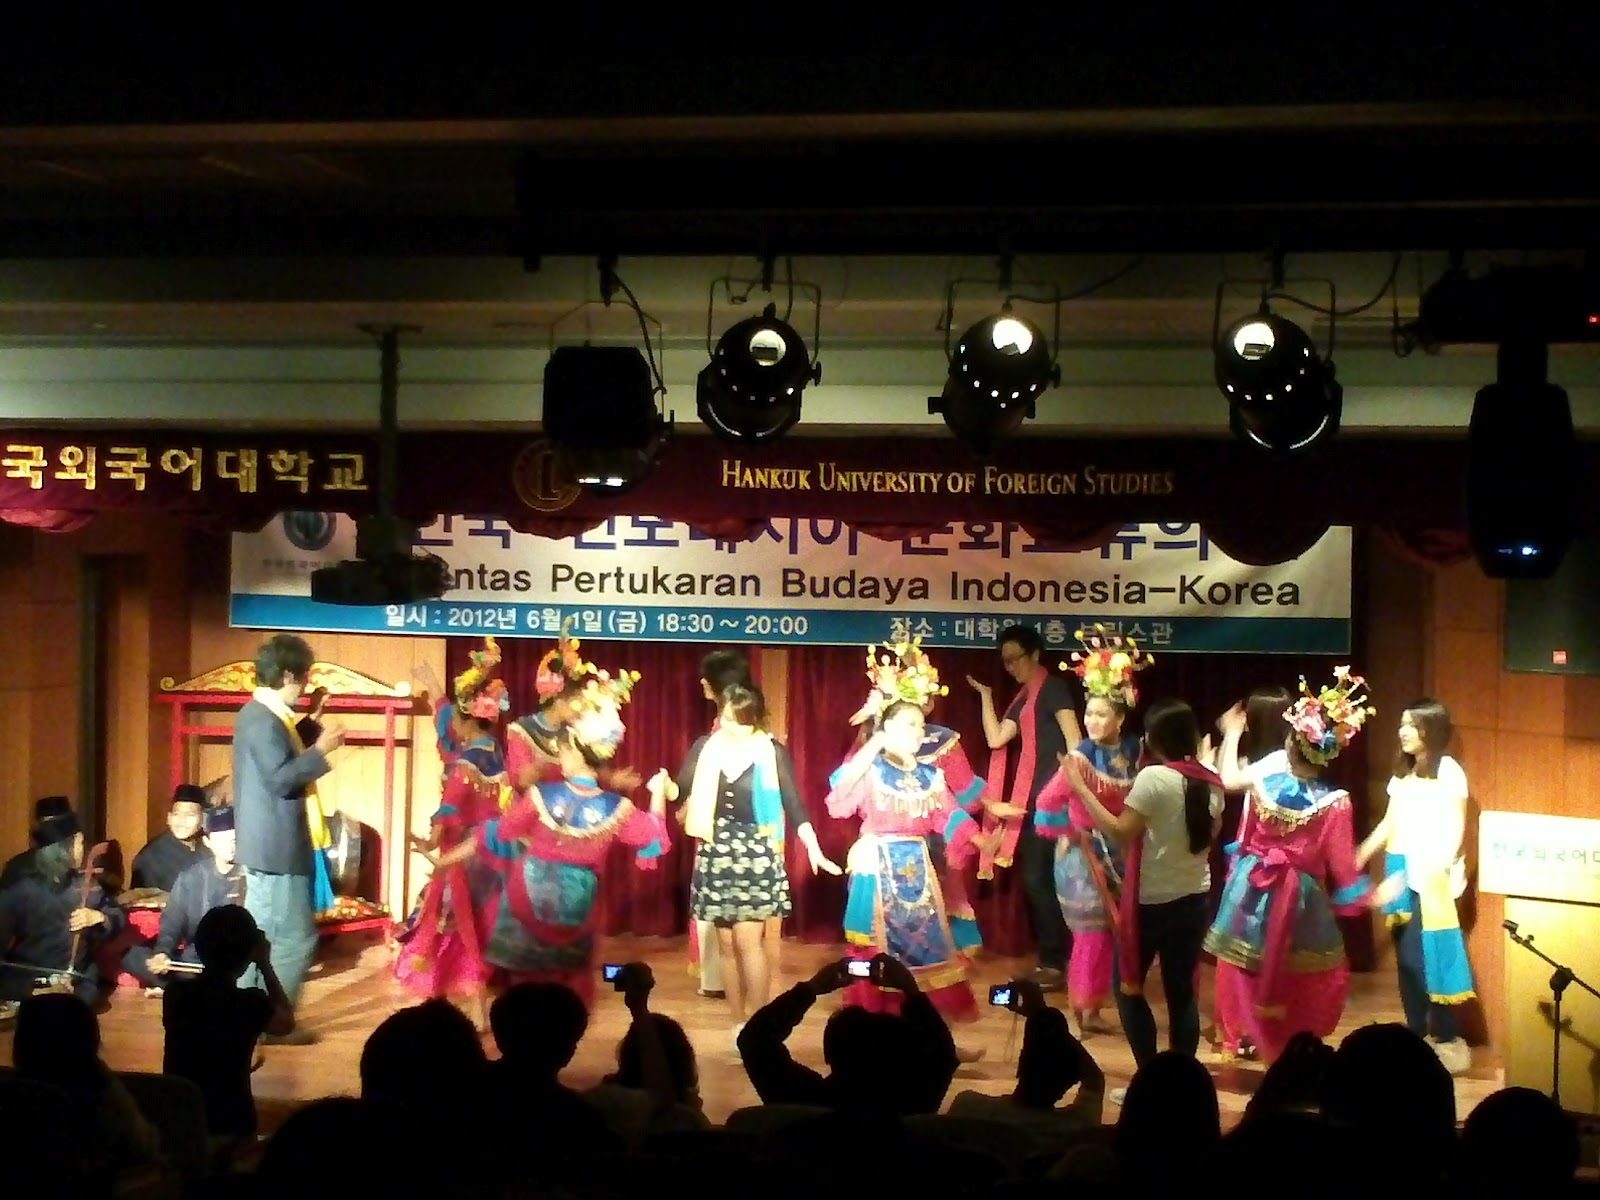 Surays World: IndonesiaKorea CUltural Show part 1